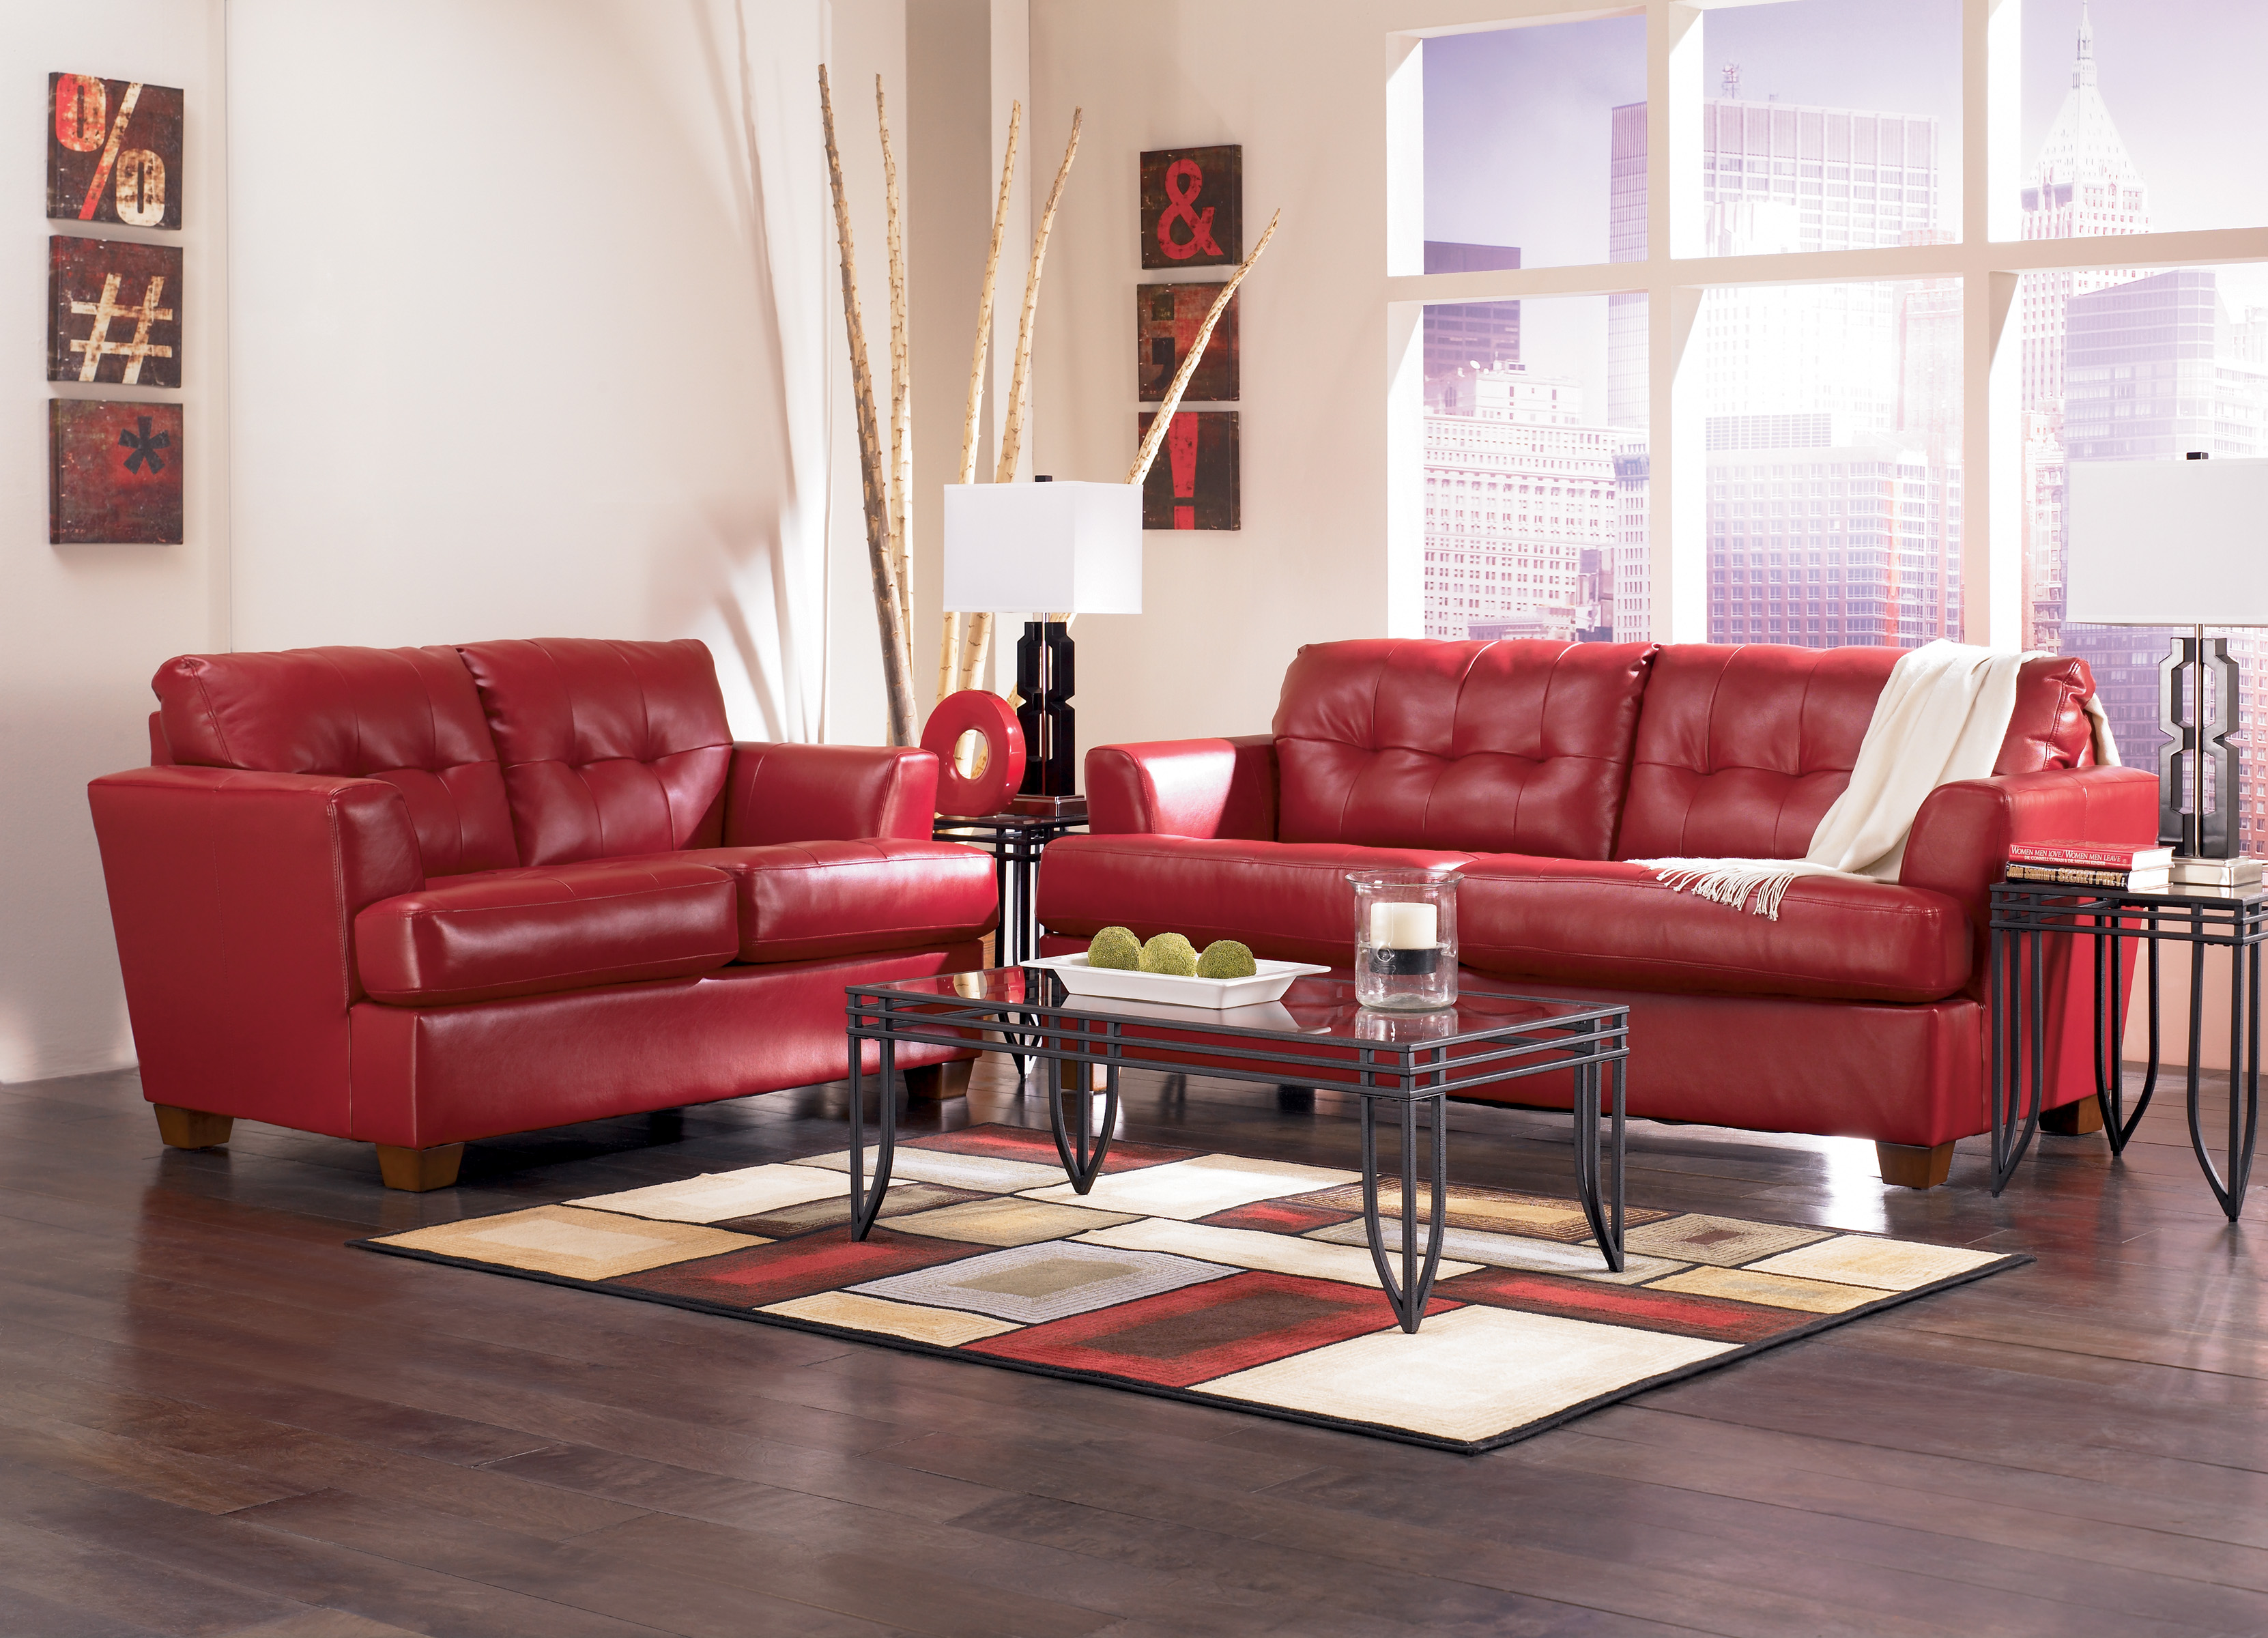 Decorate a small living room with red sofa